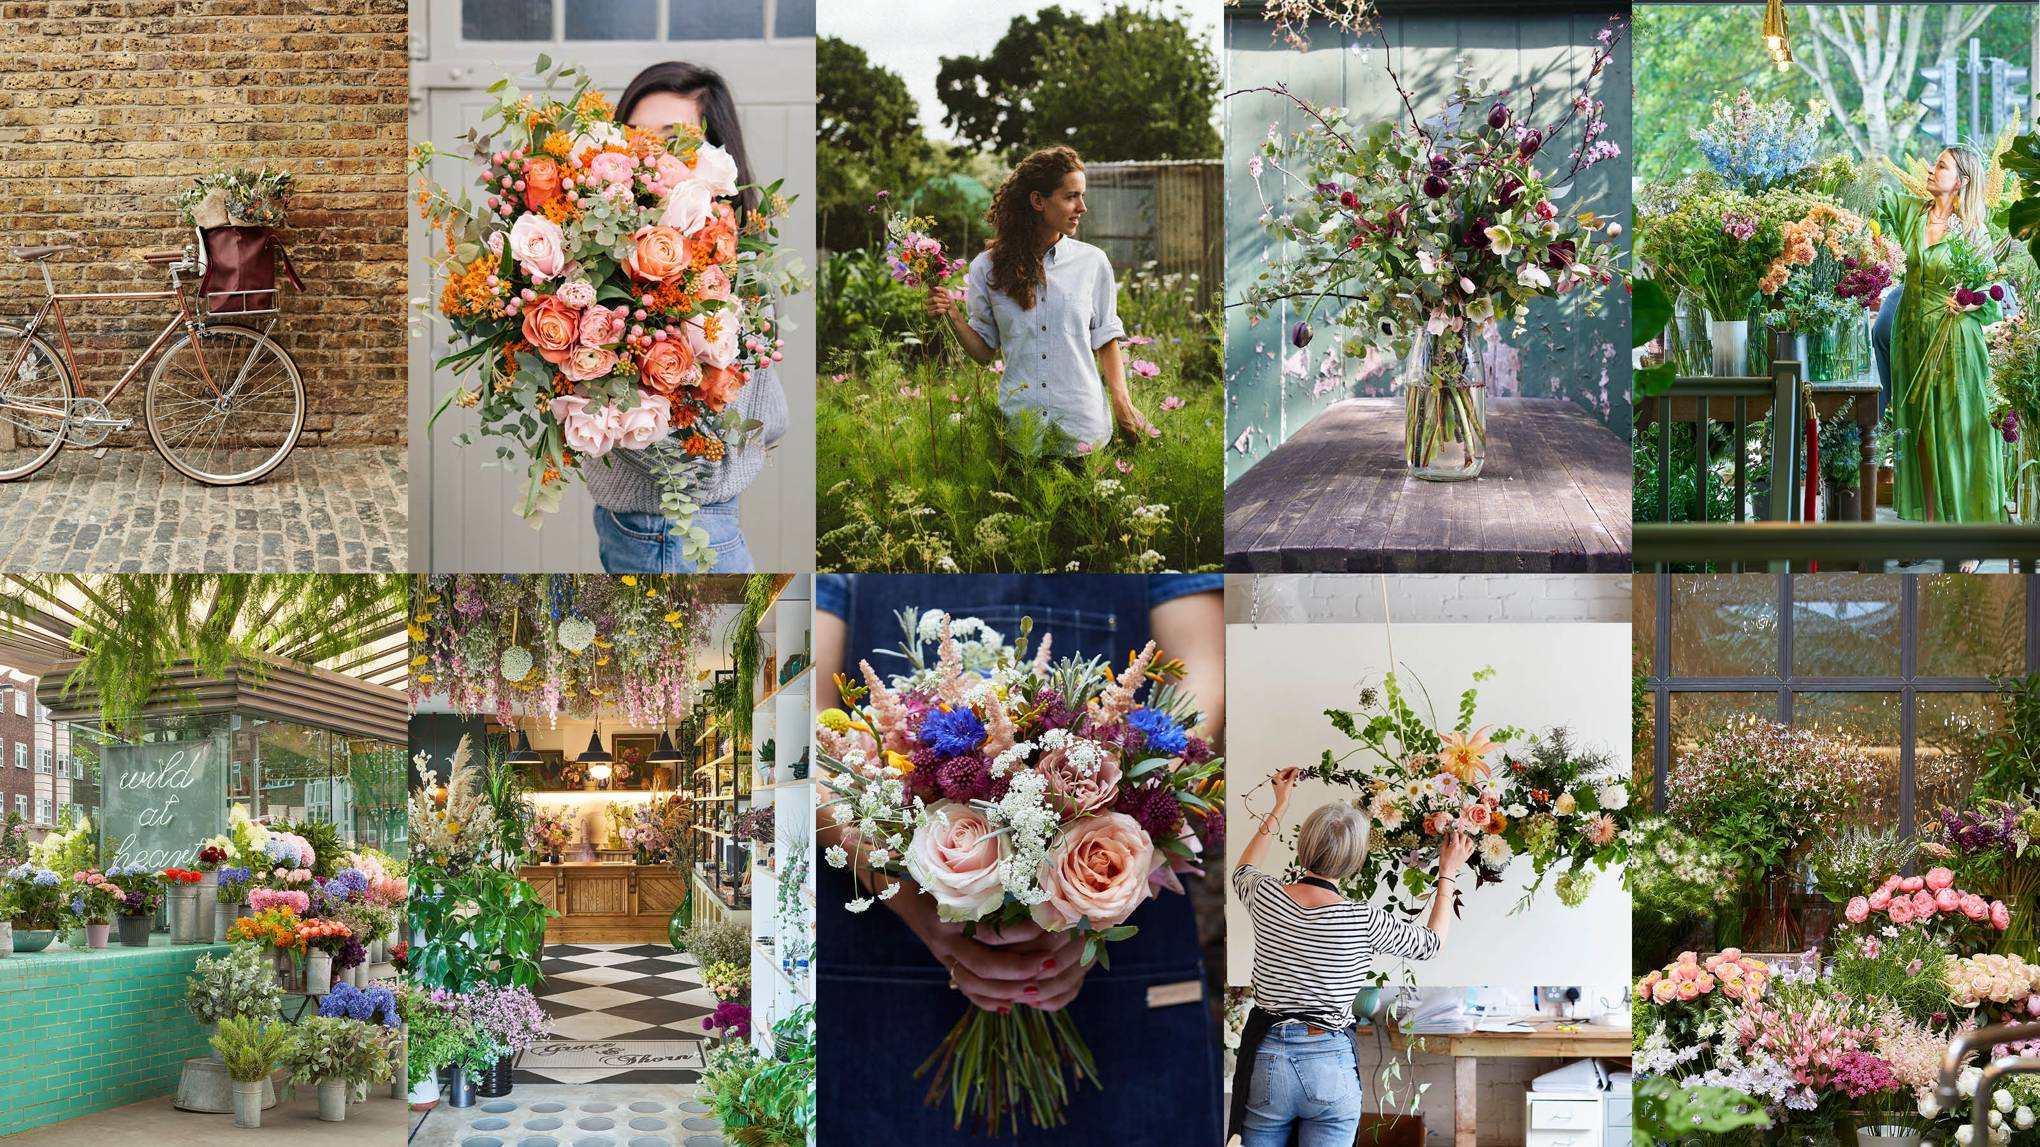 The Best Florists In London 14 Flower Shops To Shop At Cn Traveller